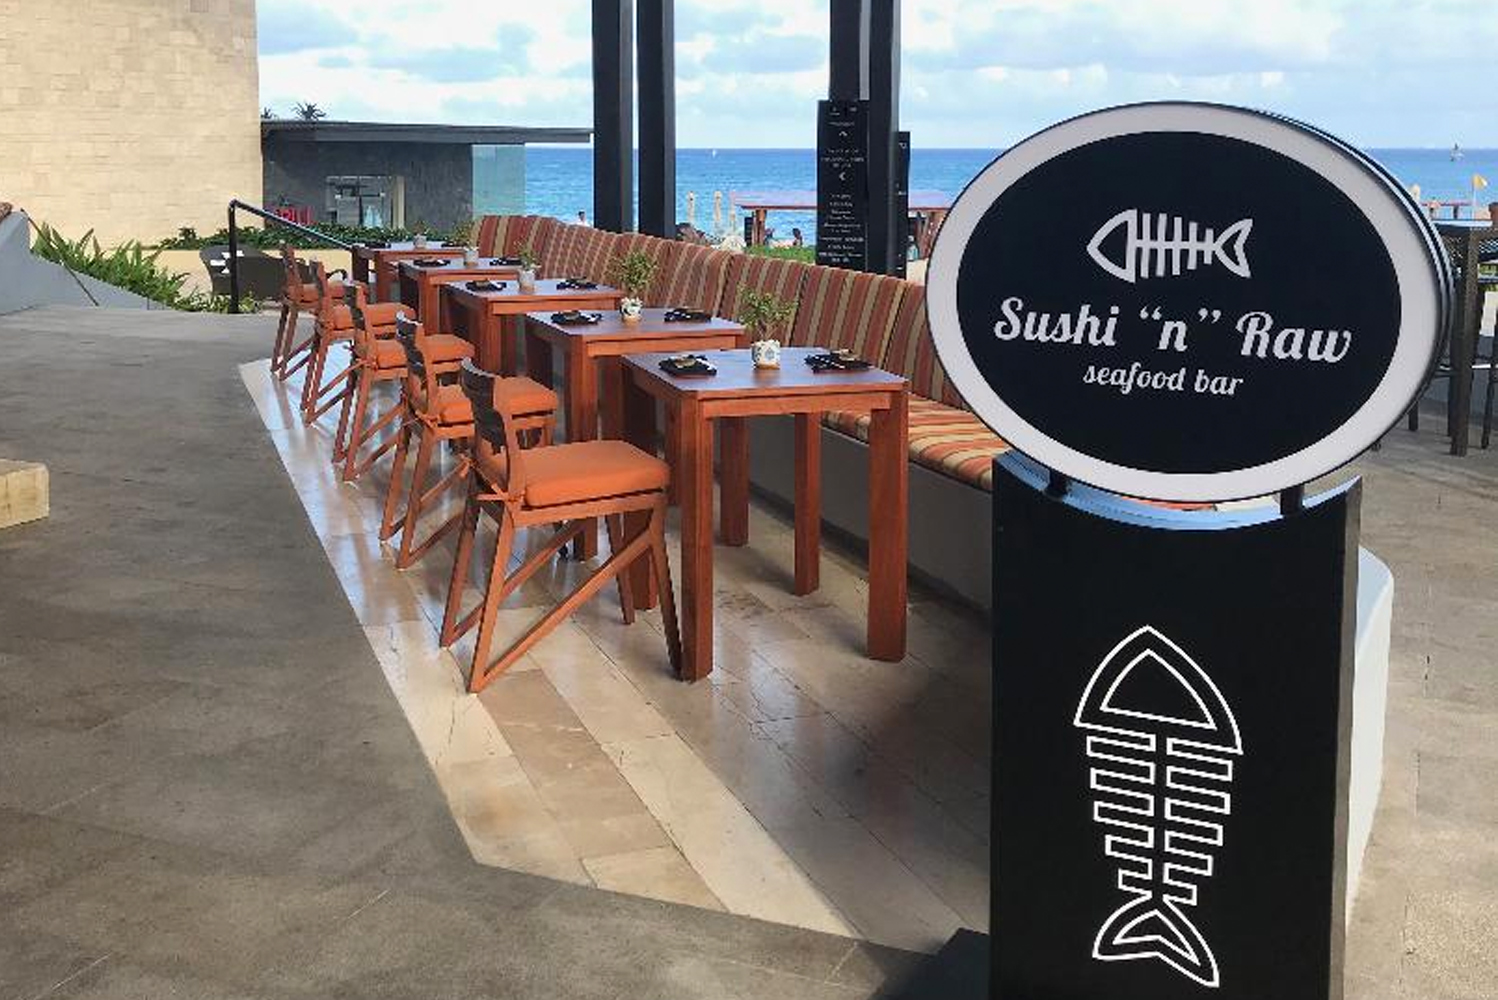 The restaurant has a 42-seat walls-free dining area that faces the Caribbean Sea. There is also an eight-person sushi bar.